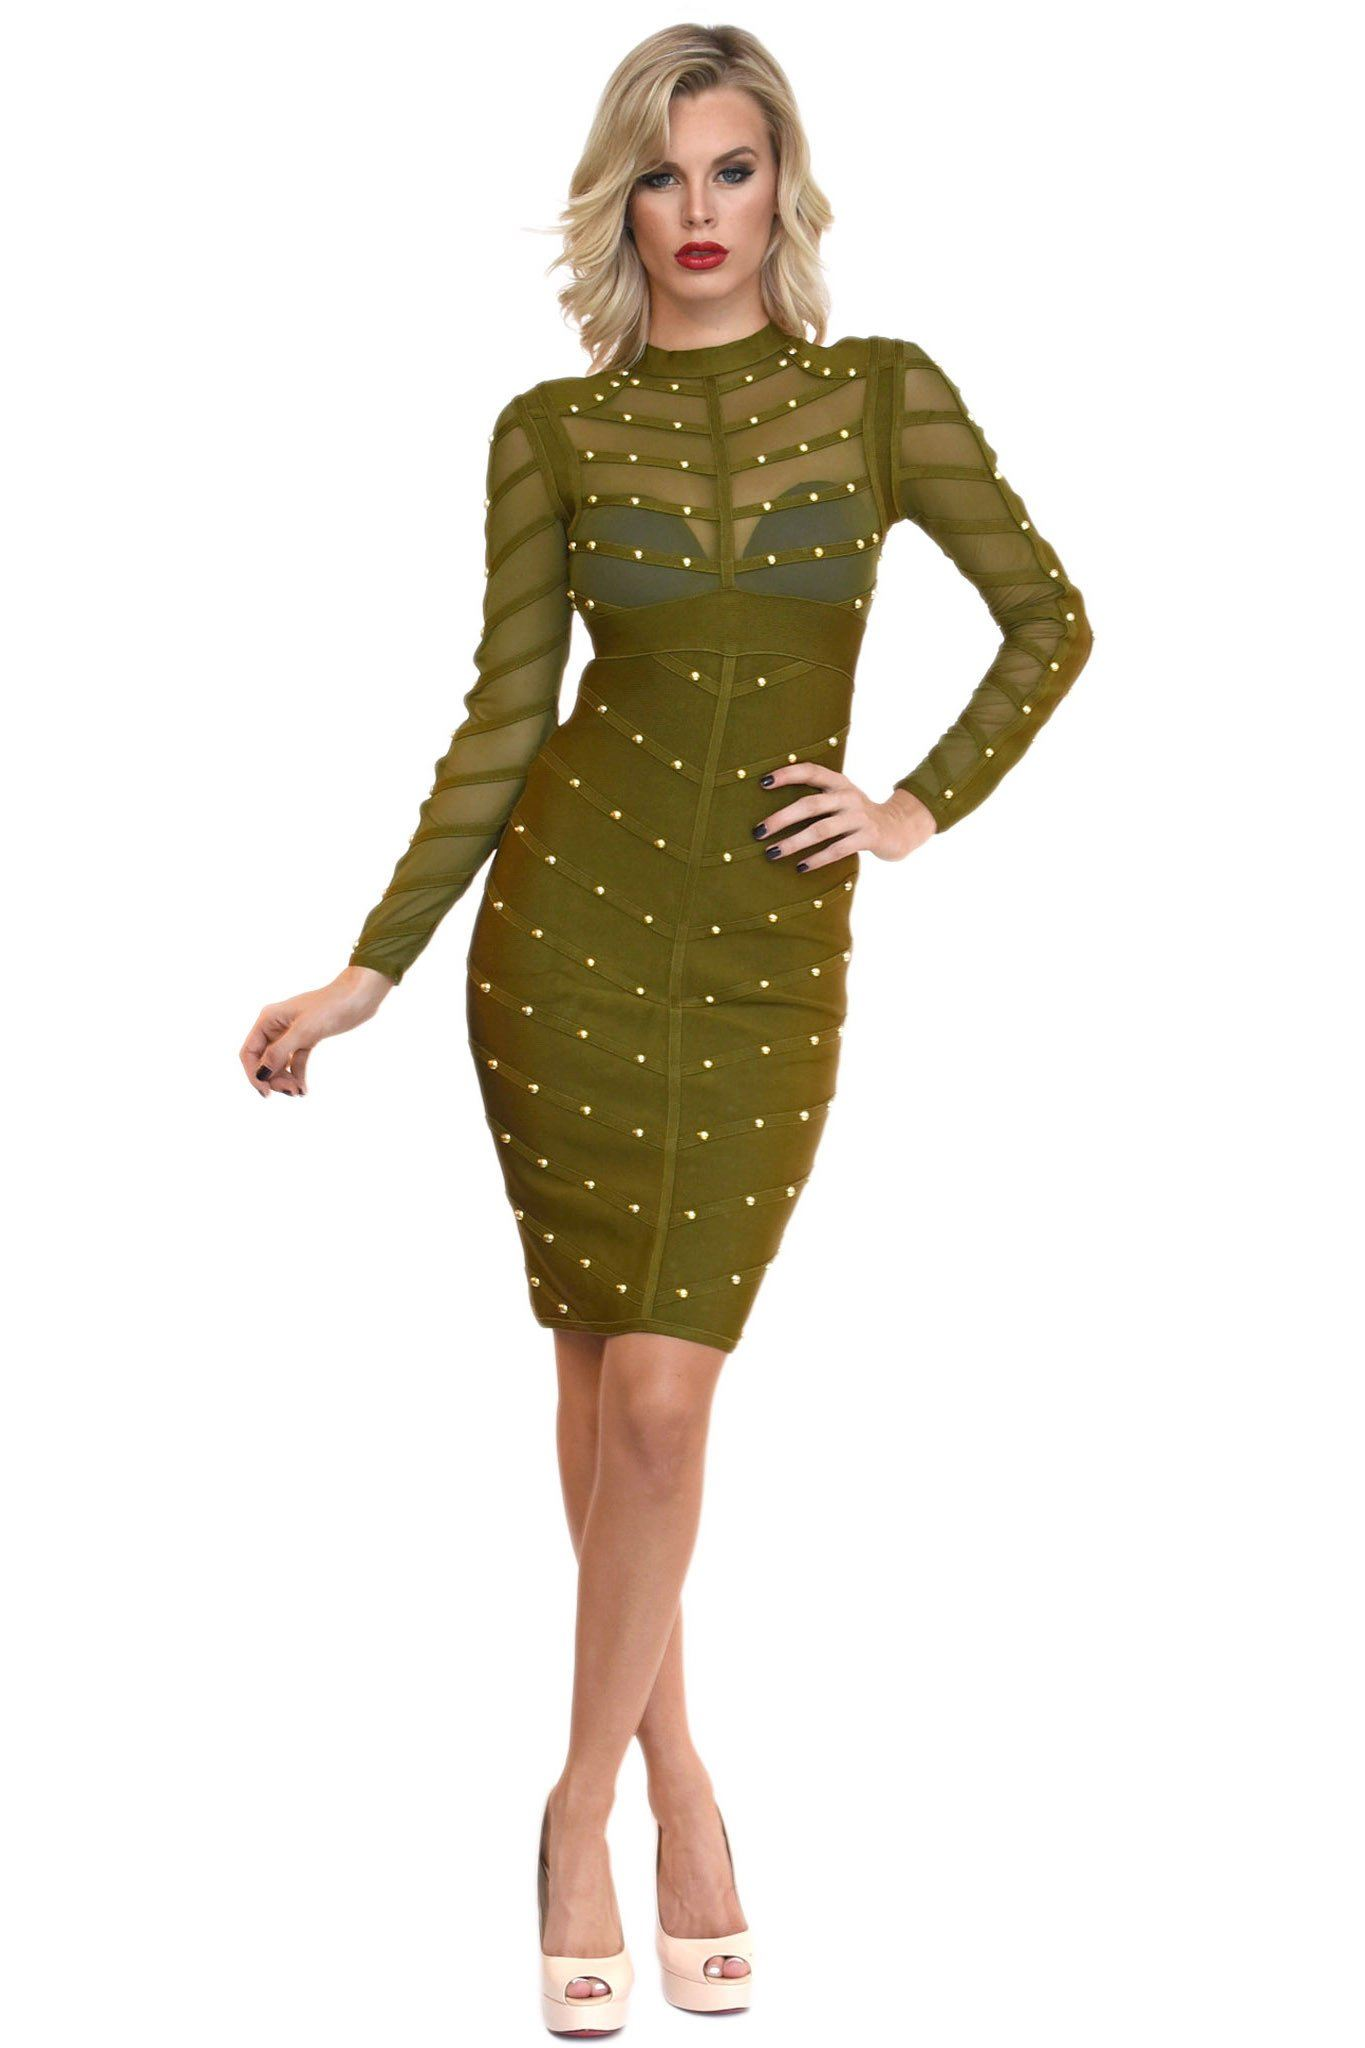 Front of olive green long sleeve bandage dress featuring sheer mesh and gold beads